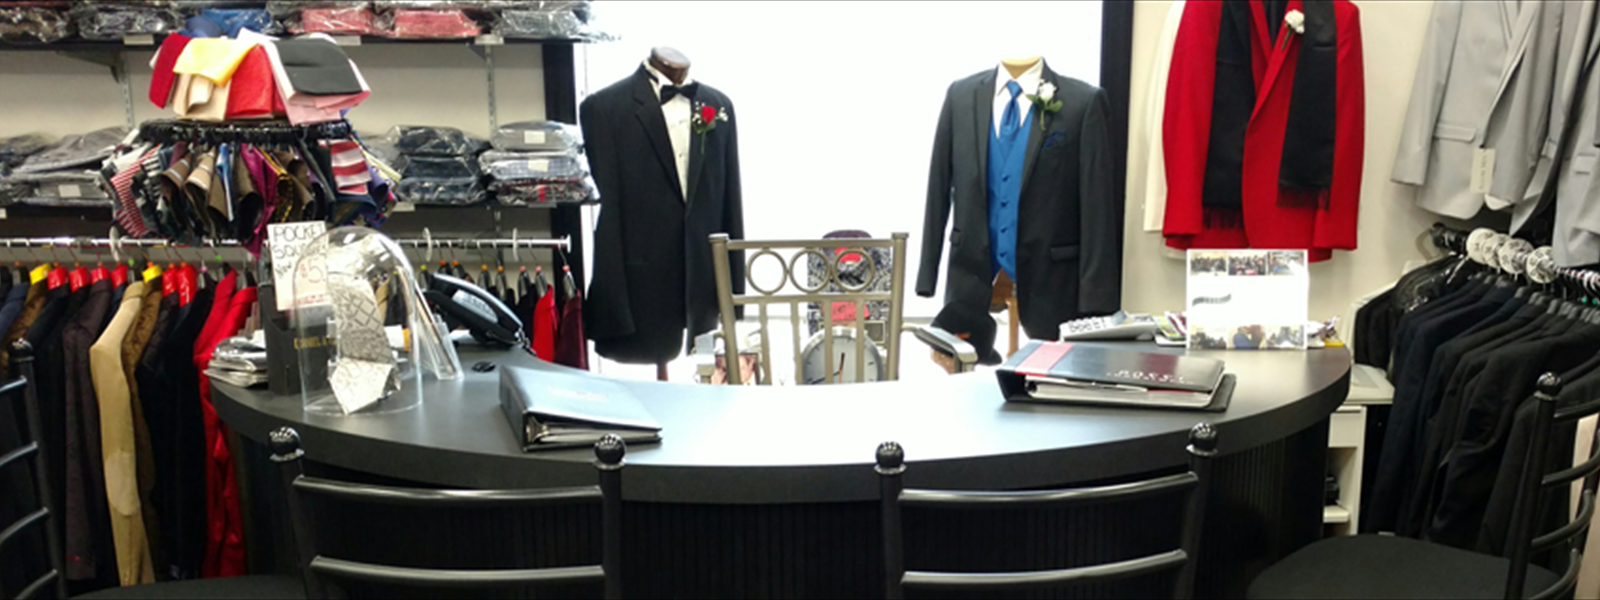 Award Winning Formal Wear Department